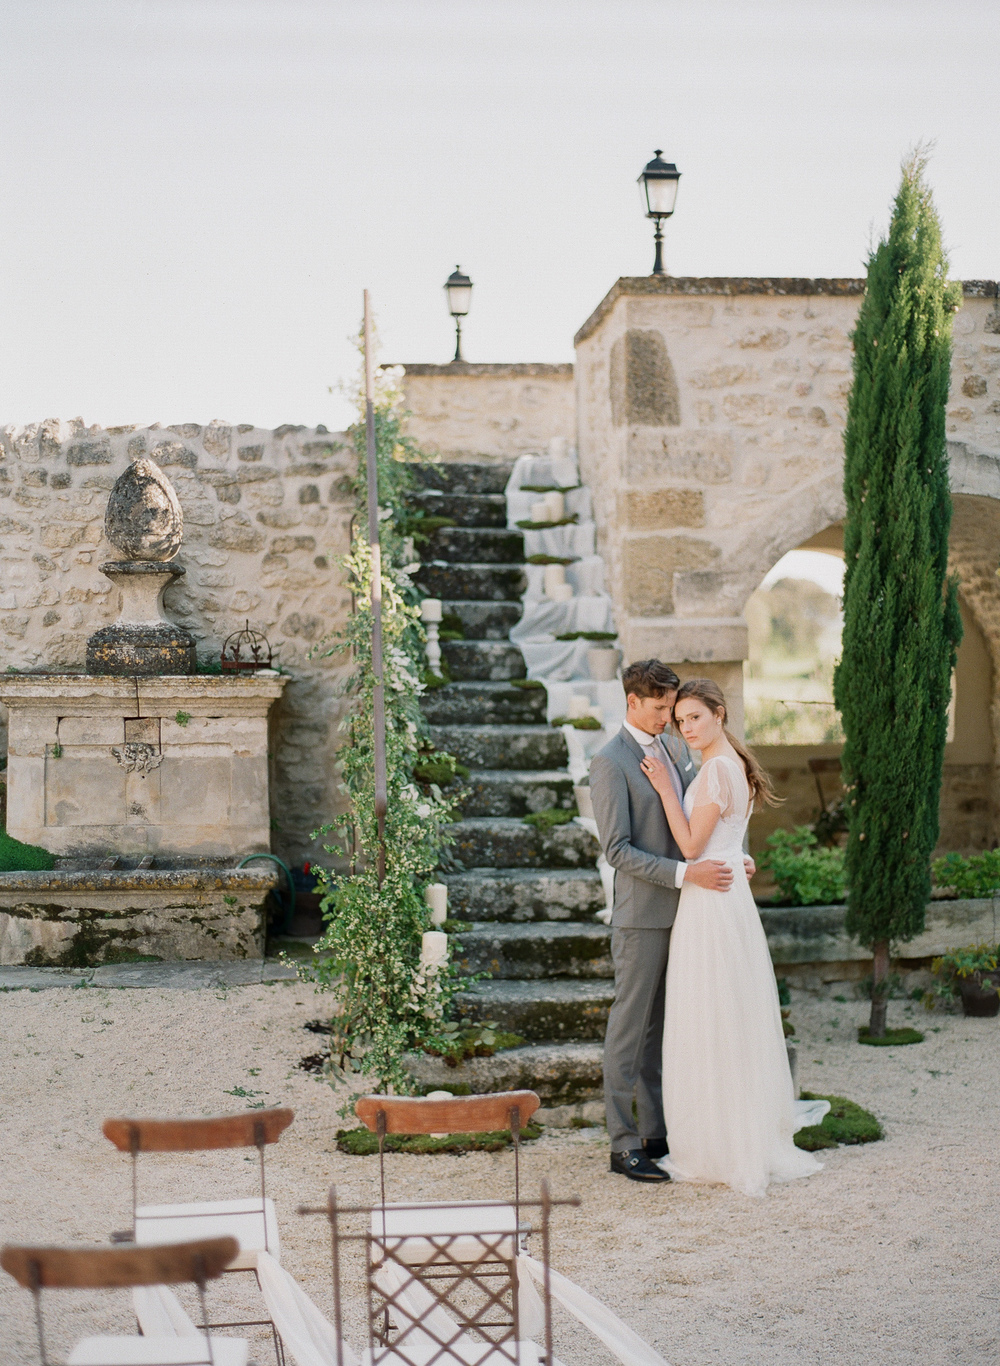 Courtney_Elizabeth_Media_France_Elopement_Light_Workshop-008.jpg